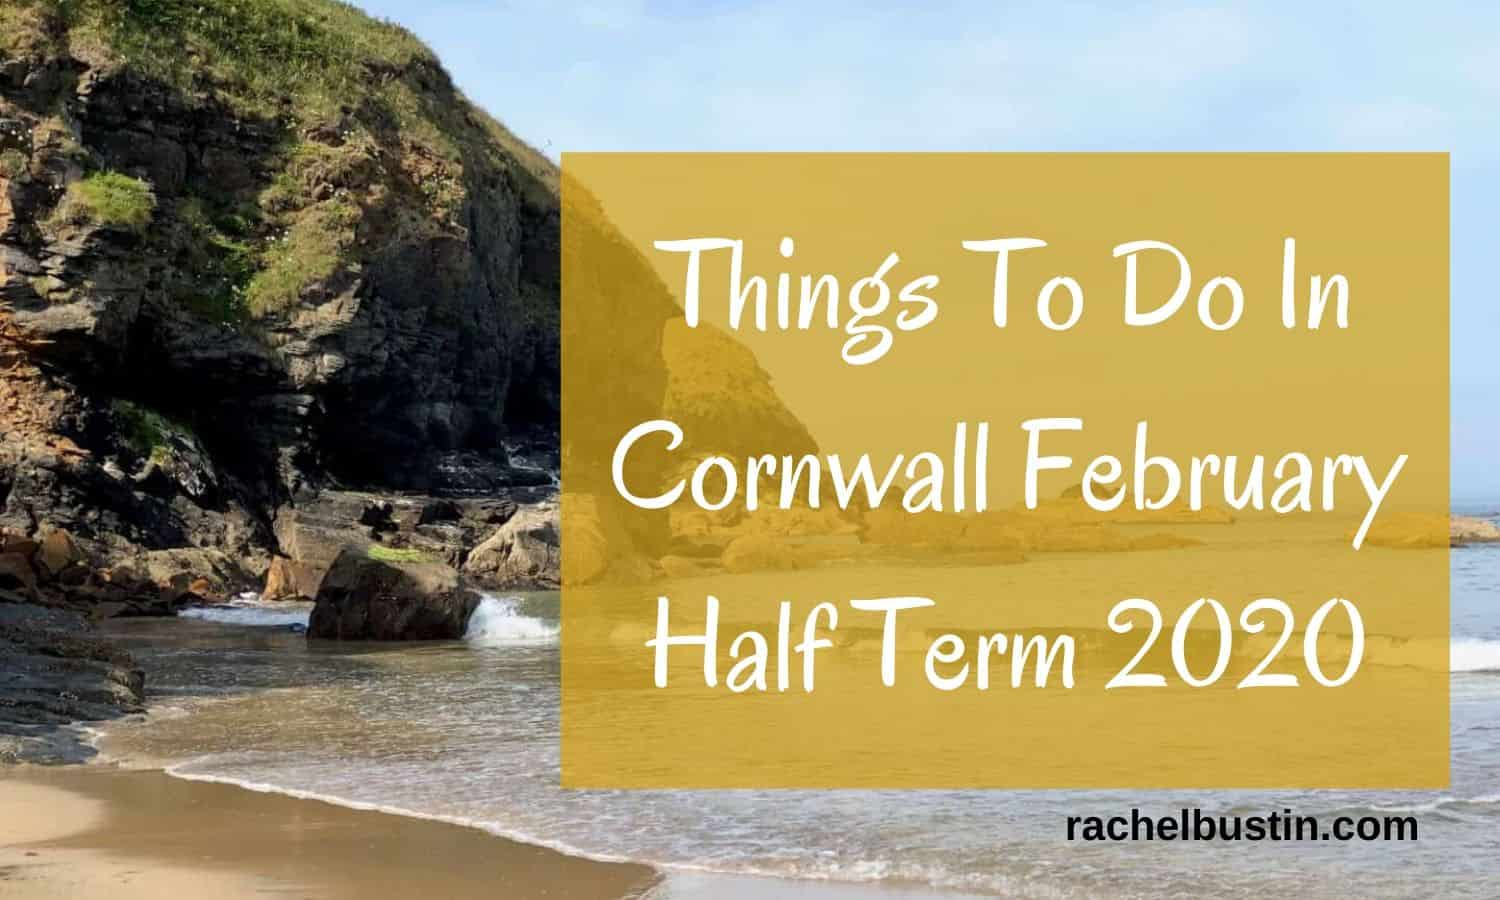 Things To Do In Cornwall February Half Term 2020